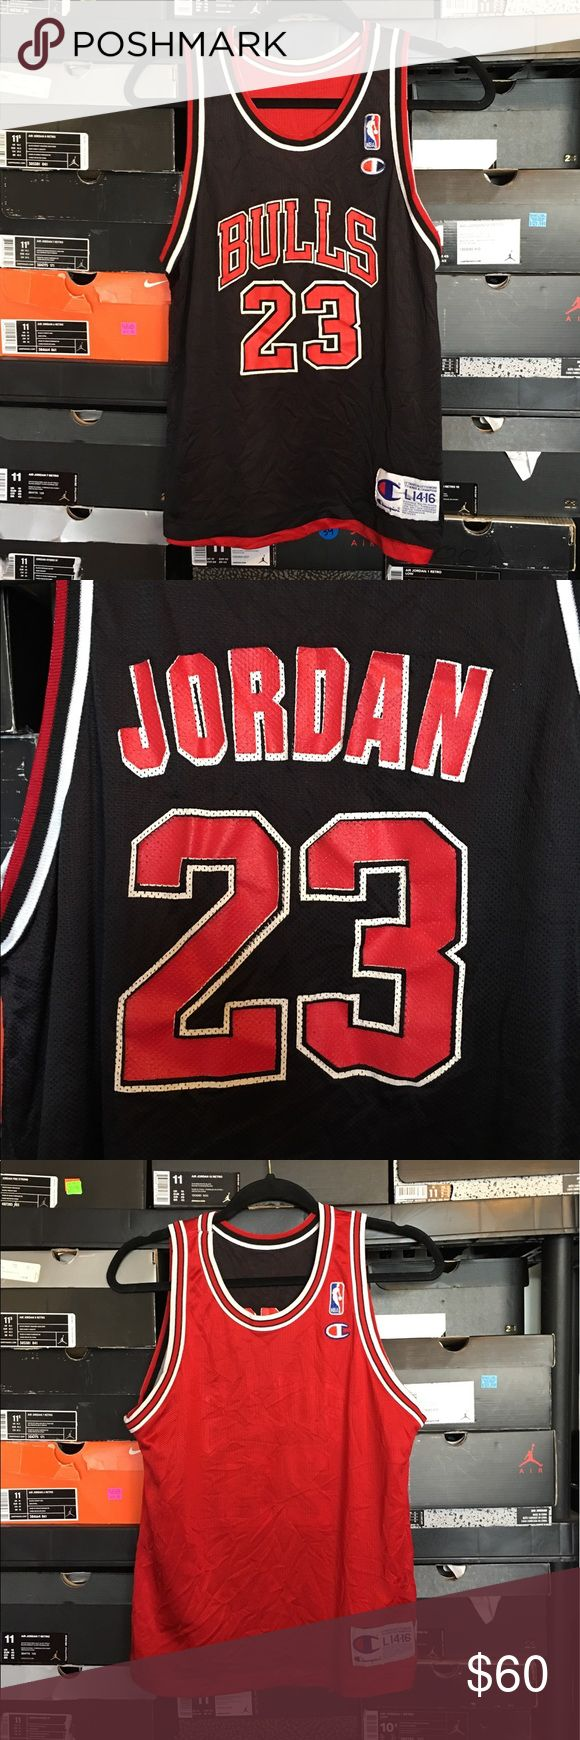 Champion NBA Chicago Bulls Michael Jordan Jersey Vintage Champion Reversible NBA Chicago Bulls Michael Jordan Jersey. Kids size Large 14/16. Red side of jersey does not have any screen print. Perfect for customizing. Champion Shirts & Tops Tank Tops